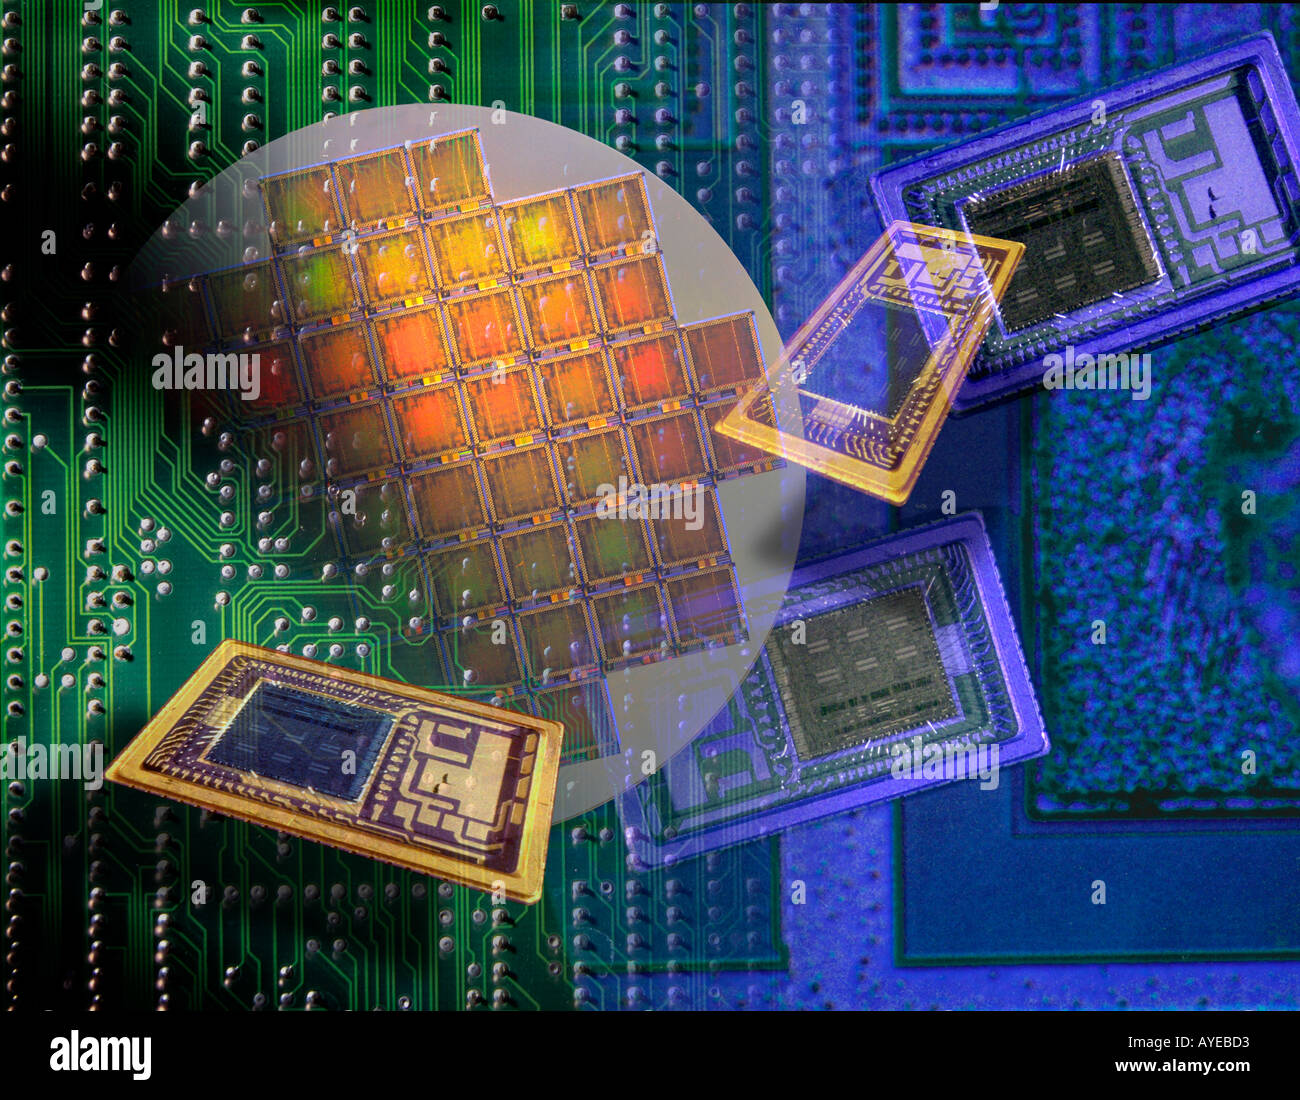 silicon computer chips montage - Stock Image